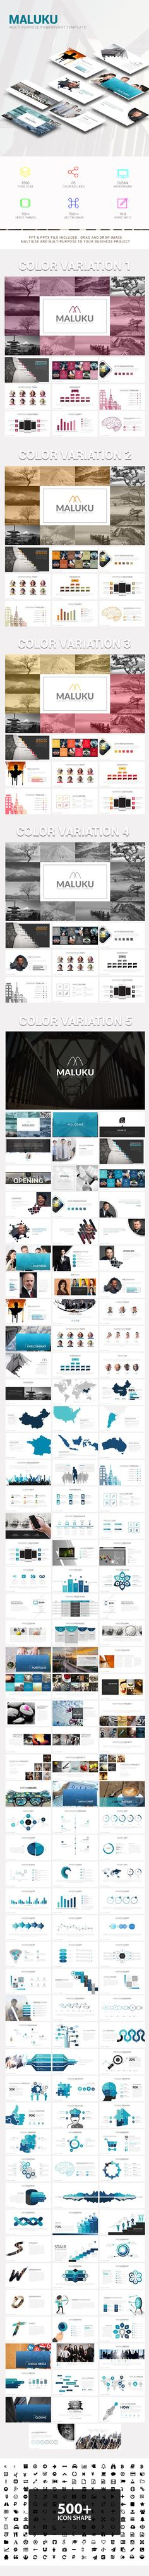 Maluku Powerpoint Template - Business PowerPoint Templates Download link: https://graphicriver.net/item/maluku-powerpoint-template/22093893?ref=KlitVogli